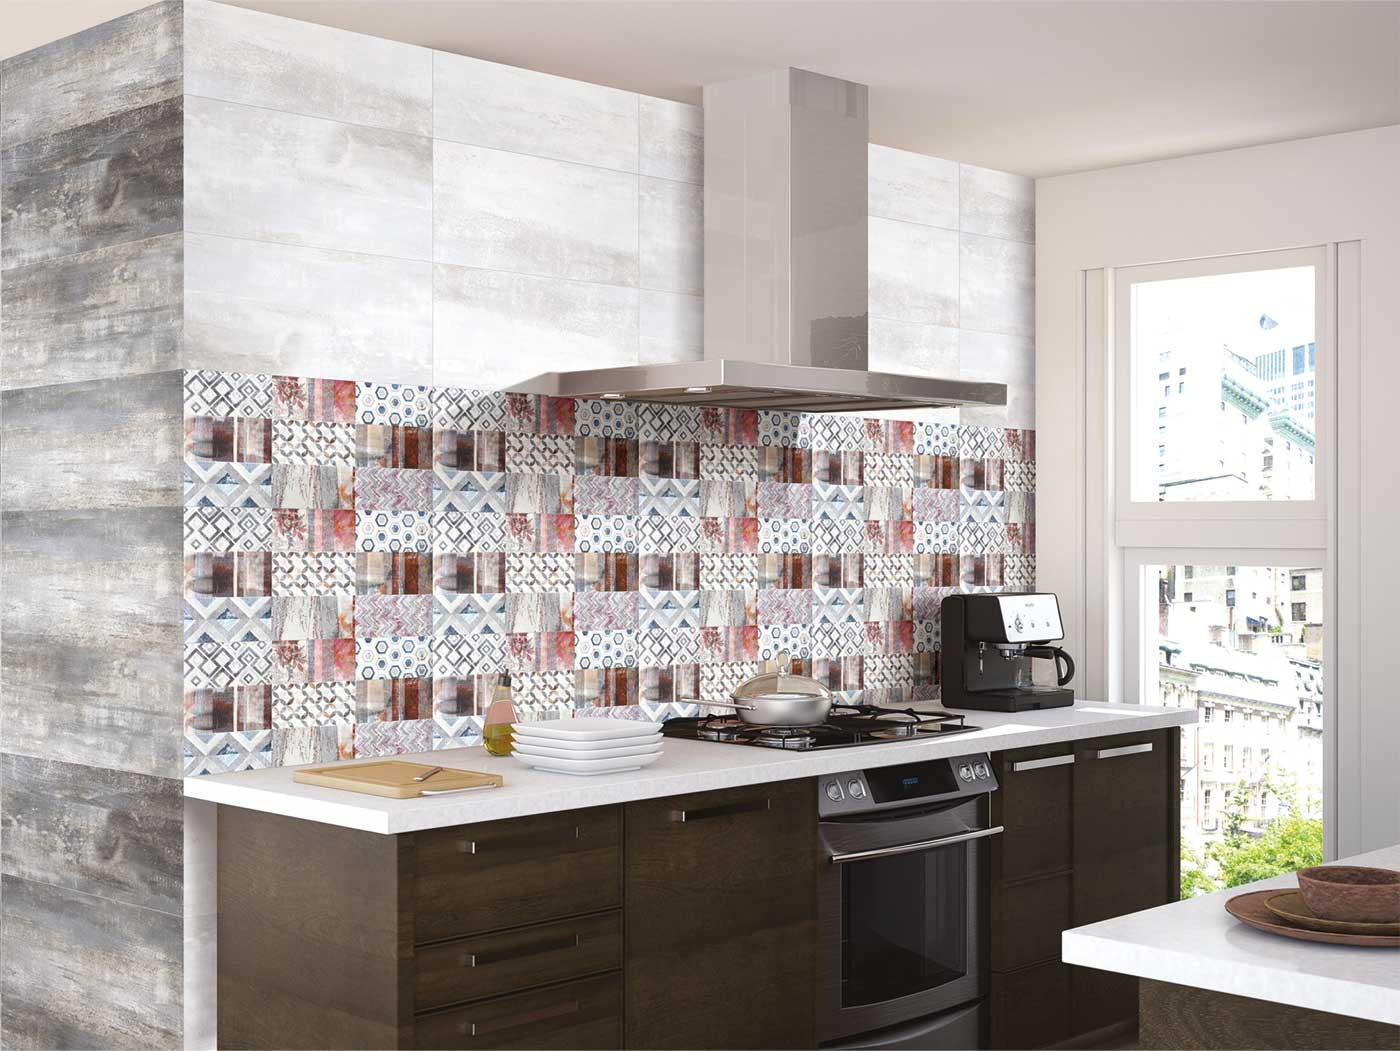 - Metallic Kitchen Tiles - Kajaria India's No.1 Tile Co.